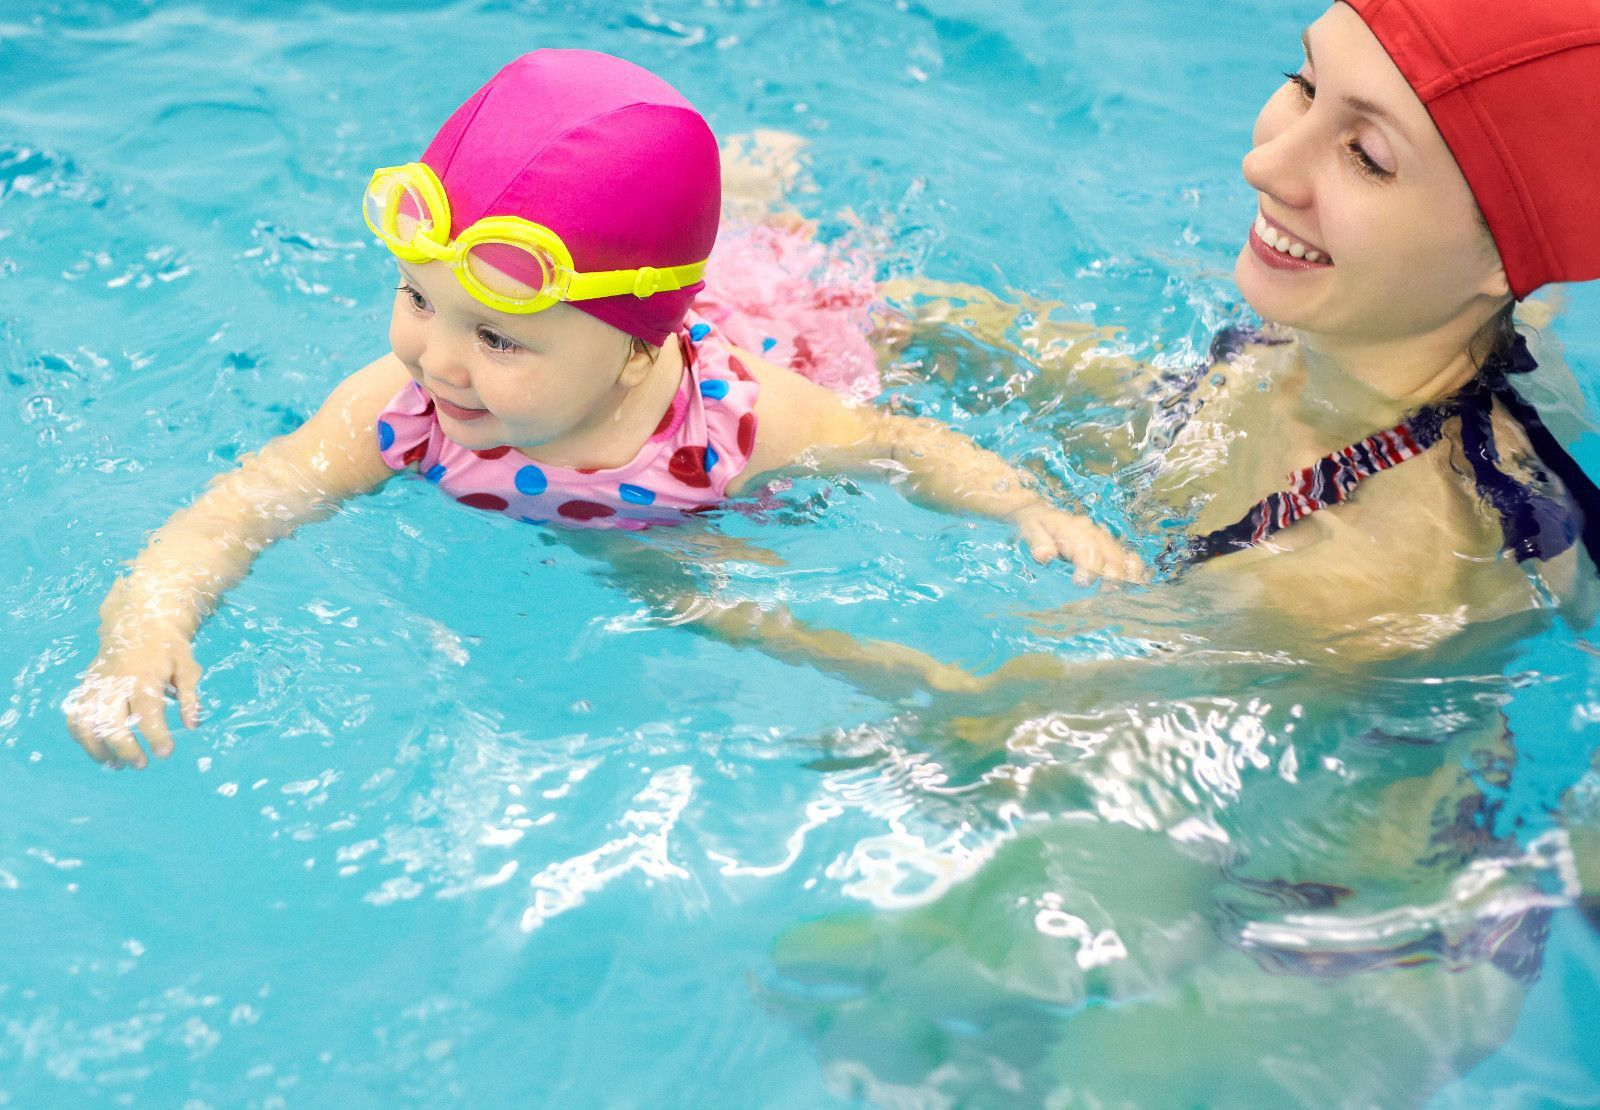 Acceleration Swimming Classes In Abu Dhabi - Babies, Toddlers And Kids